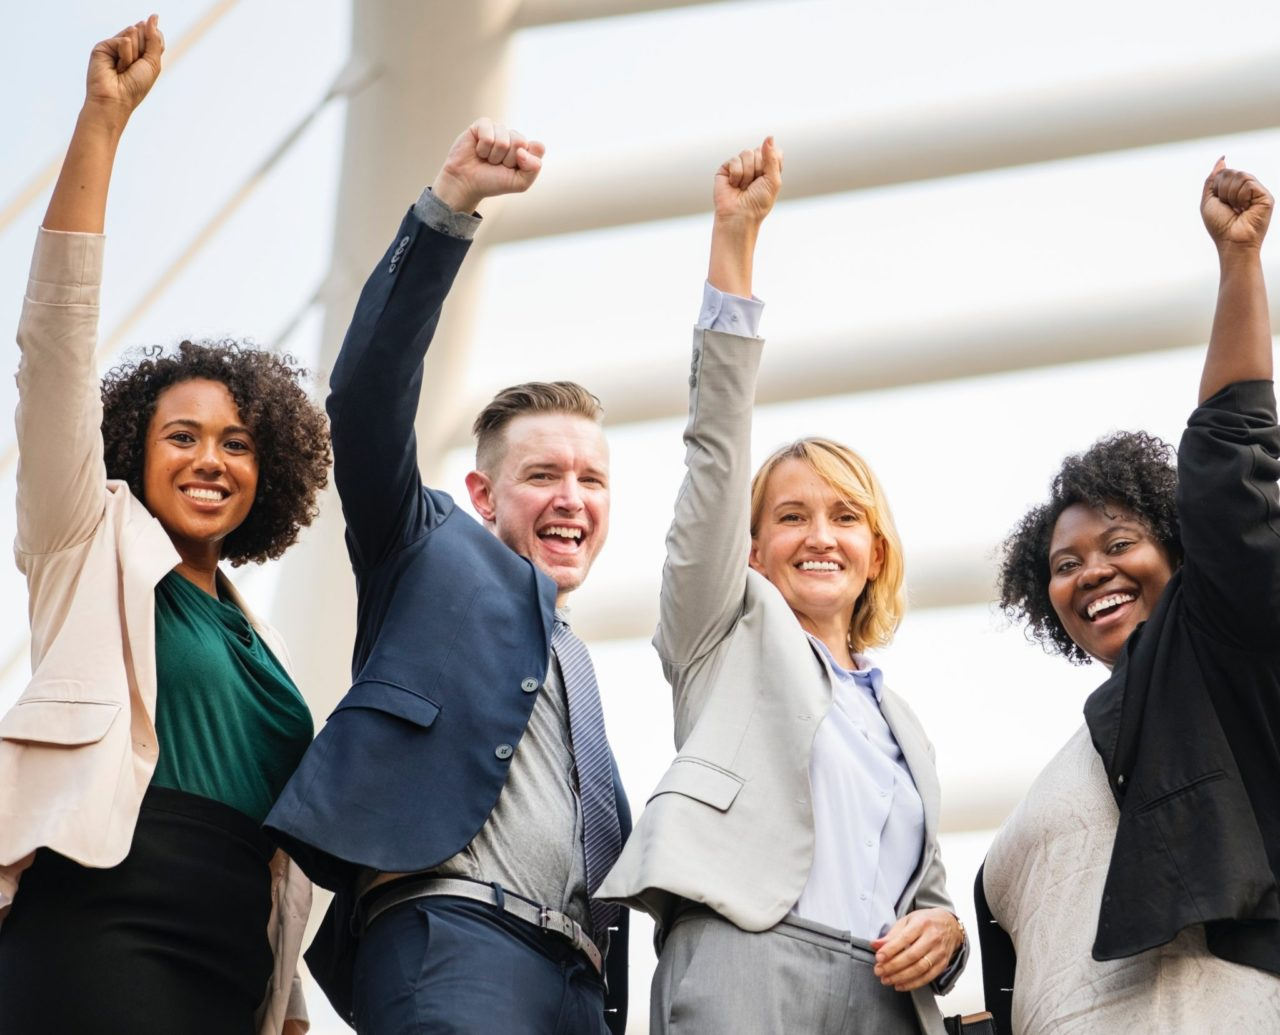 A group of people raising right hand